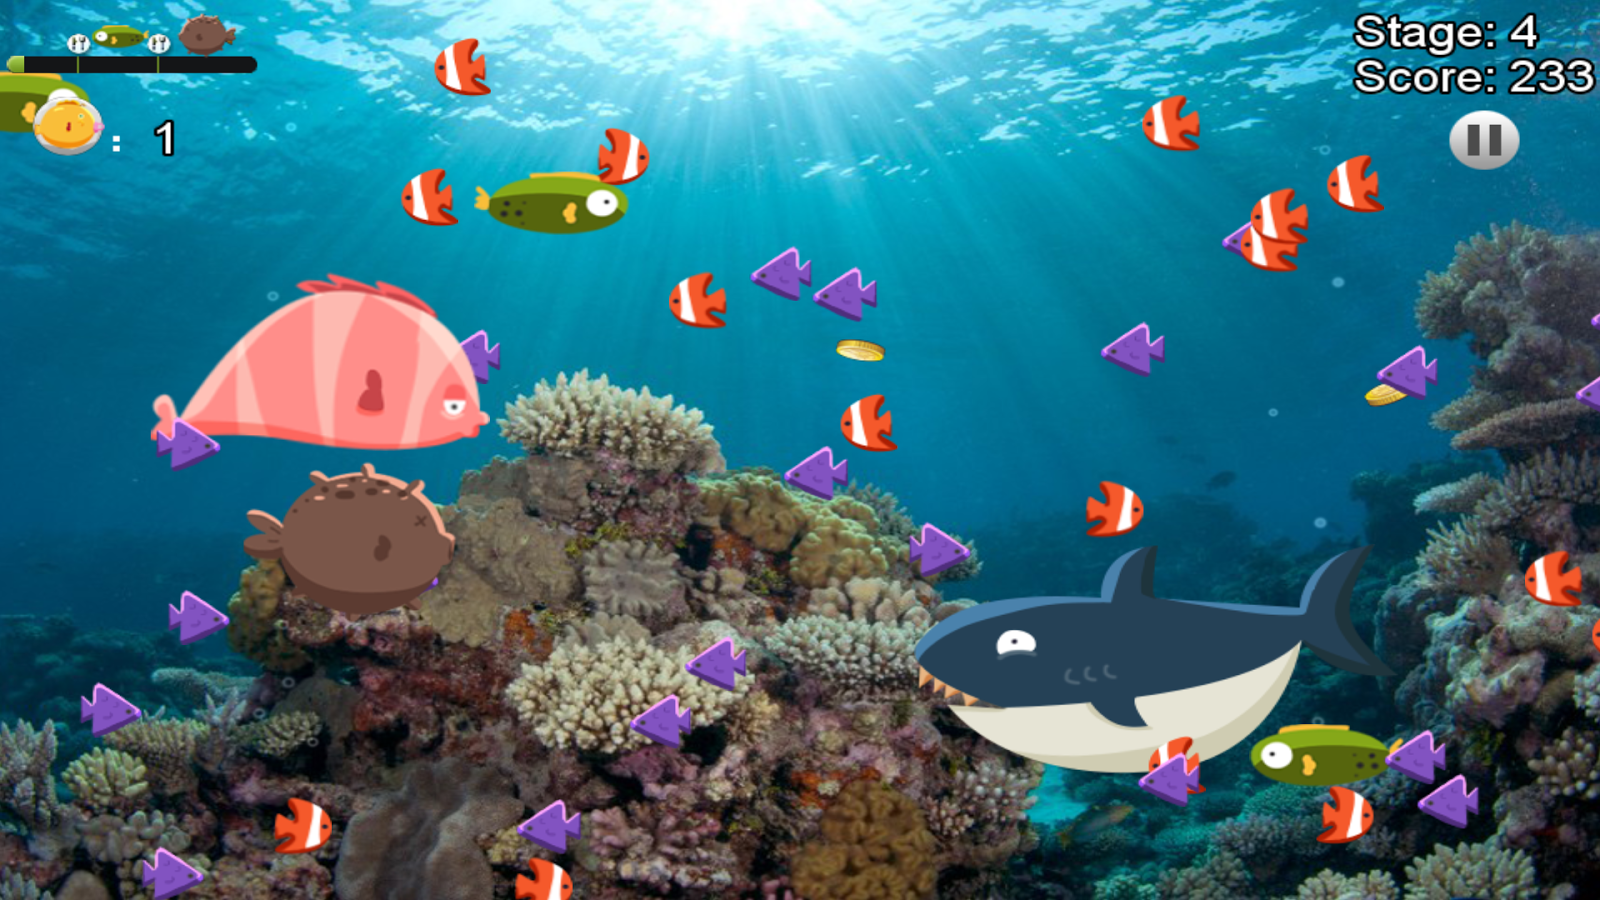 Big fish eat the small hako android apps on google play for Big fish musical script